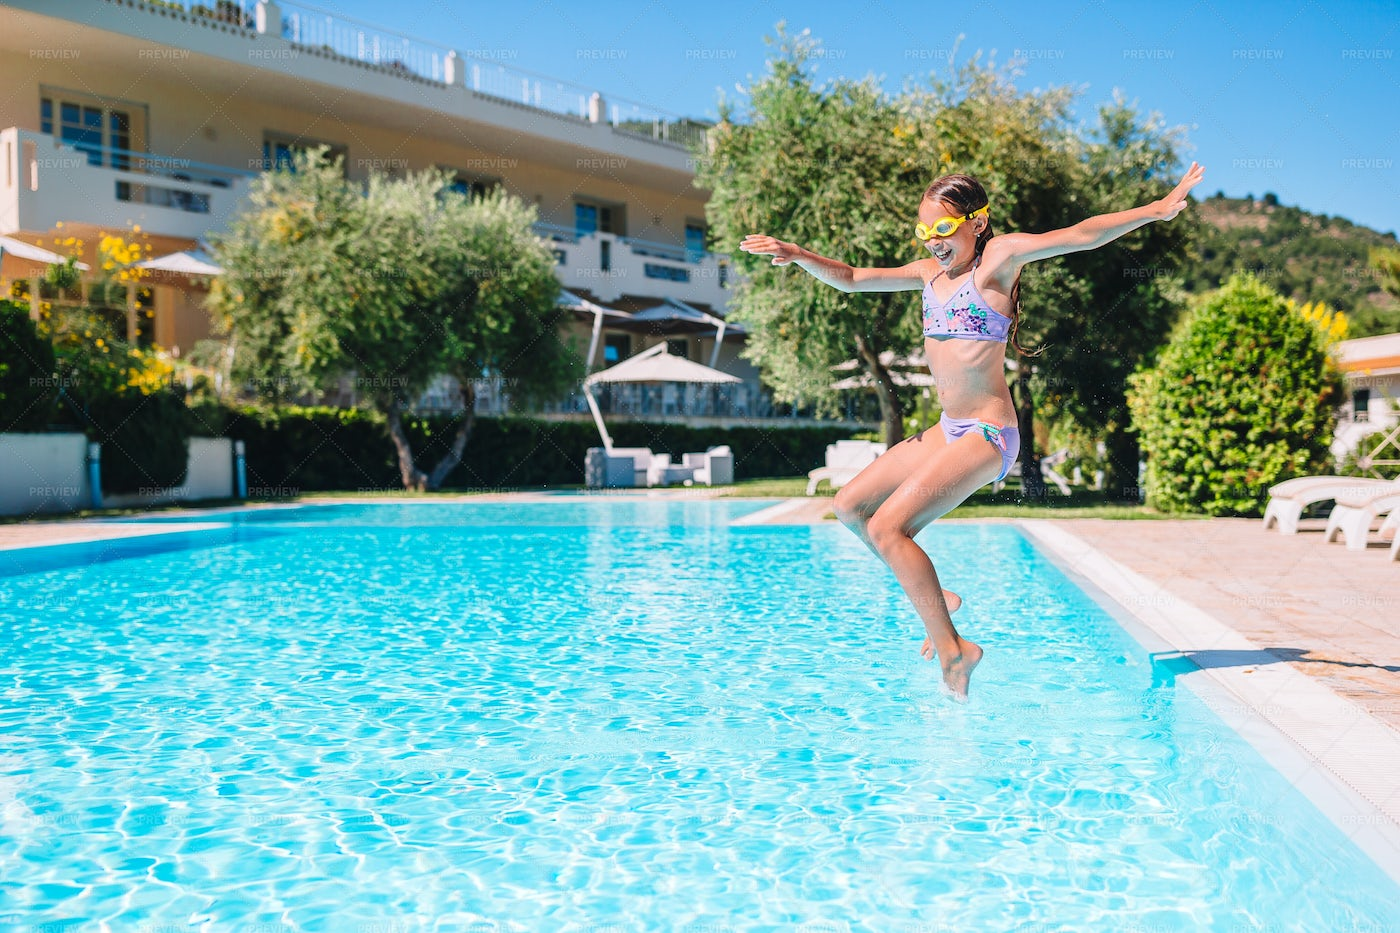 Throwing Herself Into The Pool: Stock Photos